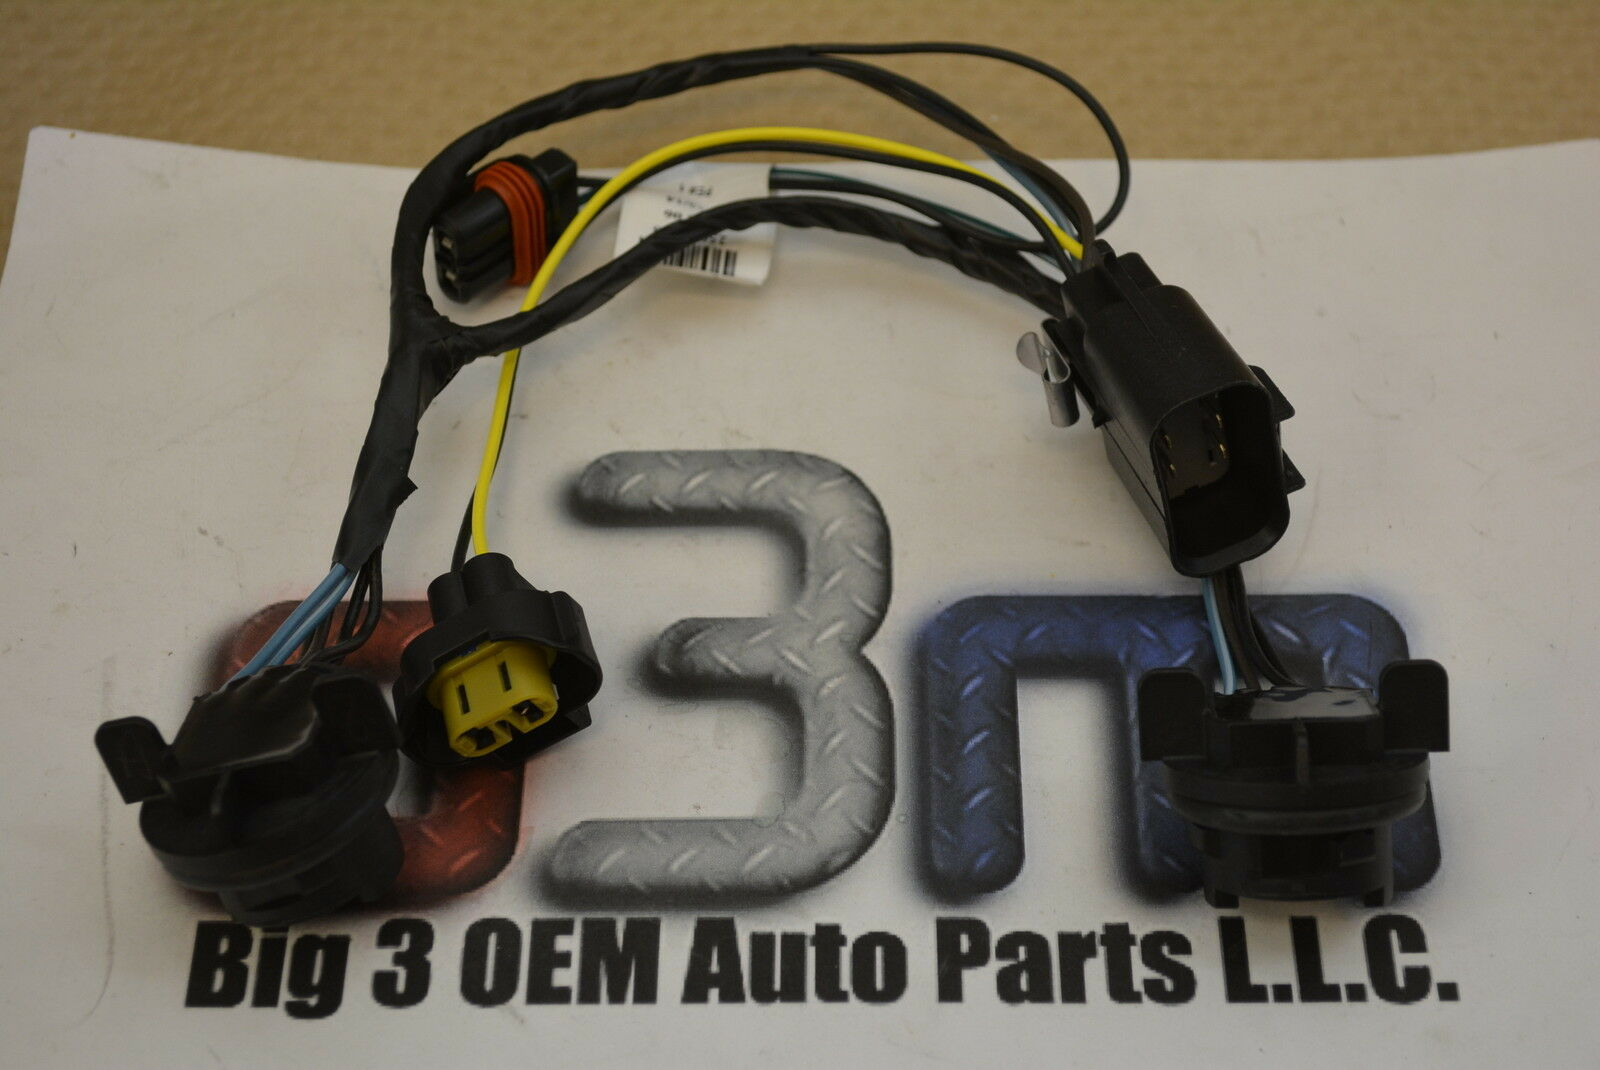 2007-2014 Chevrolet Silverado Headlamp Light Wiring Harness new OEM  25962806 1 of 1Only 1 available ...